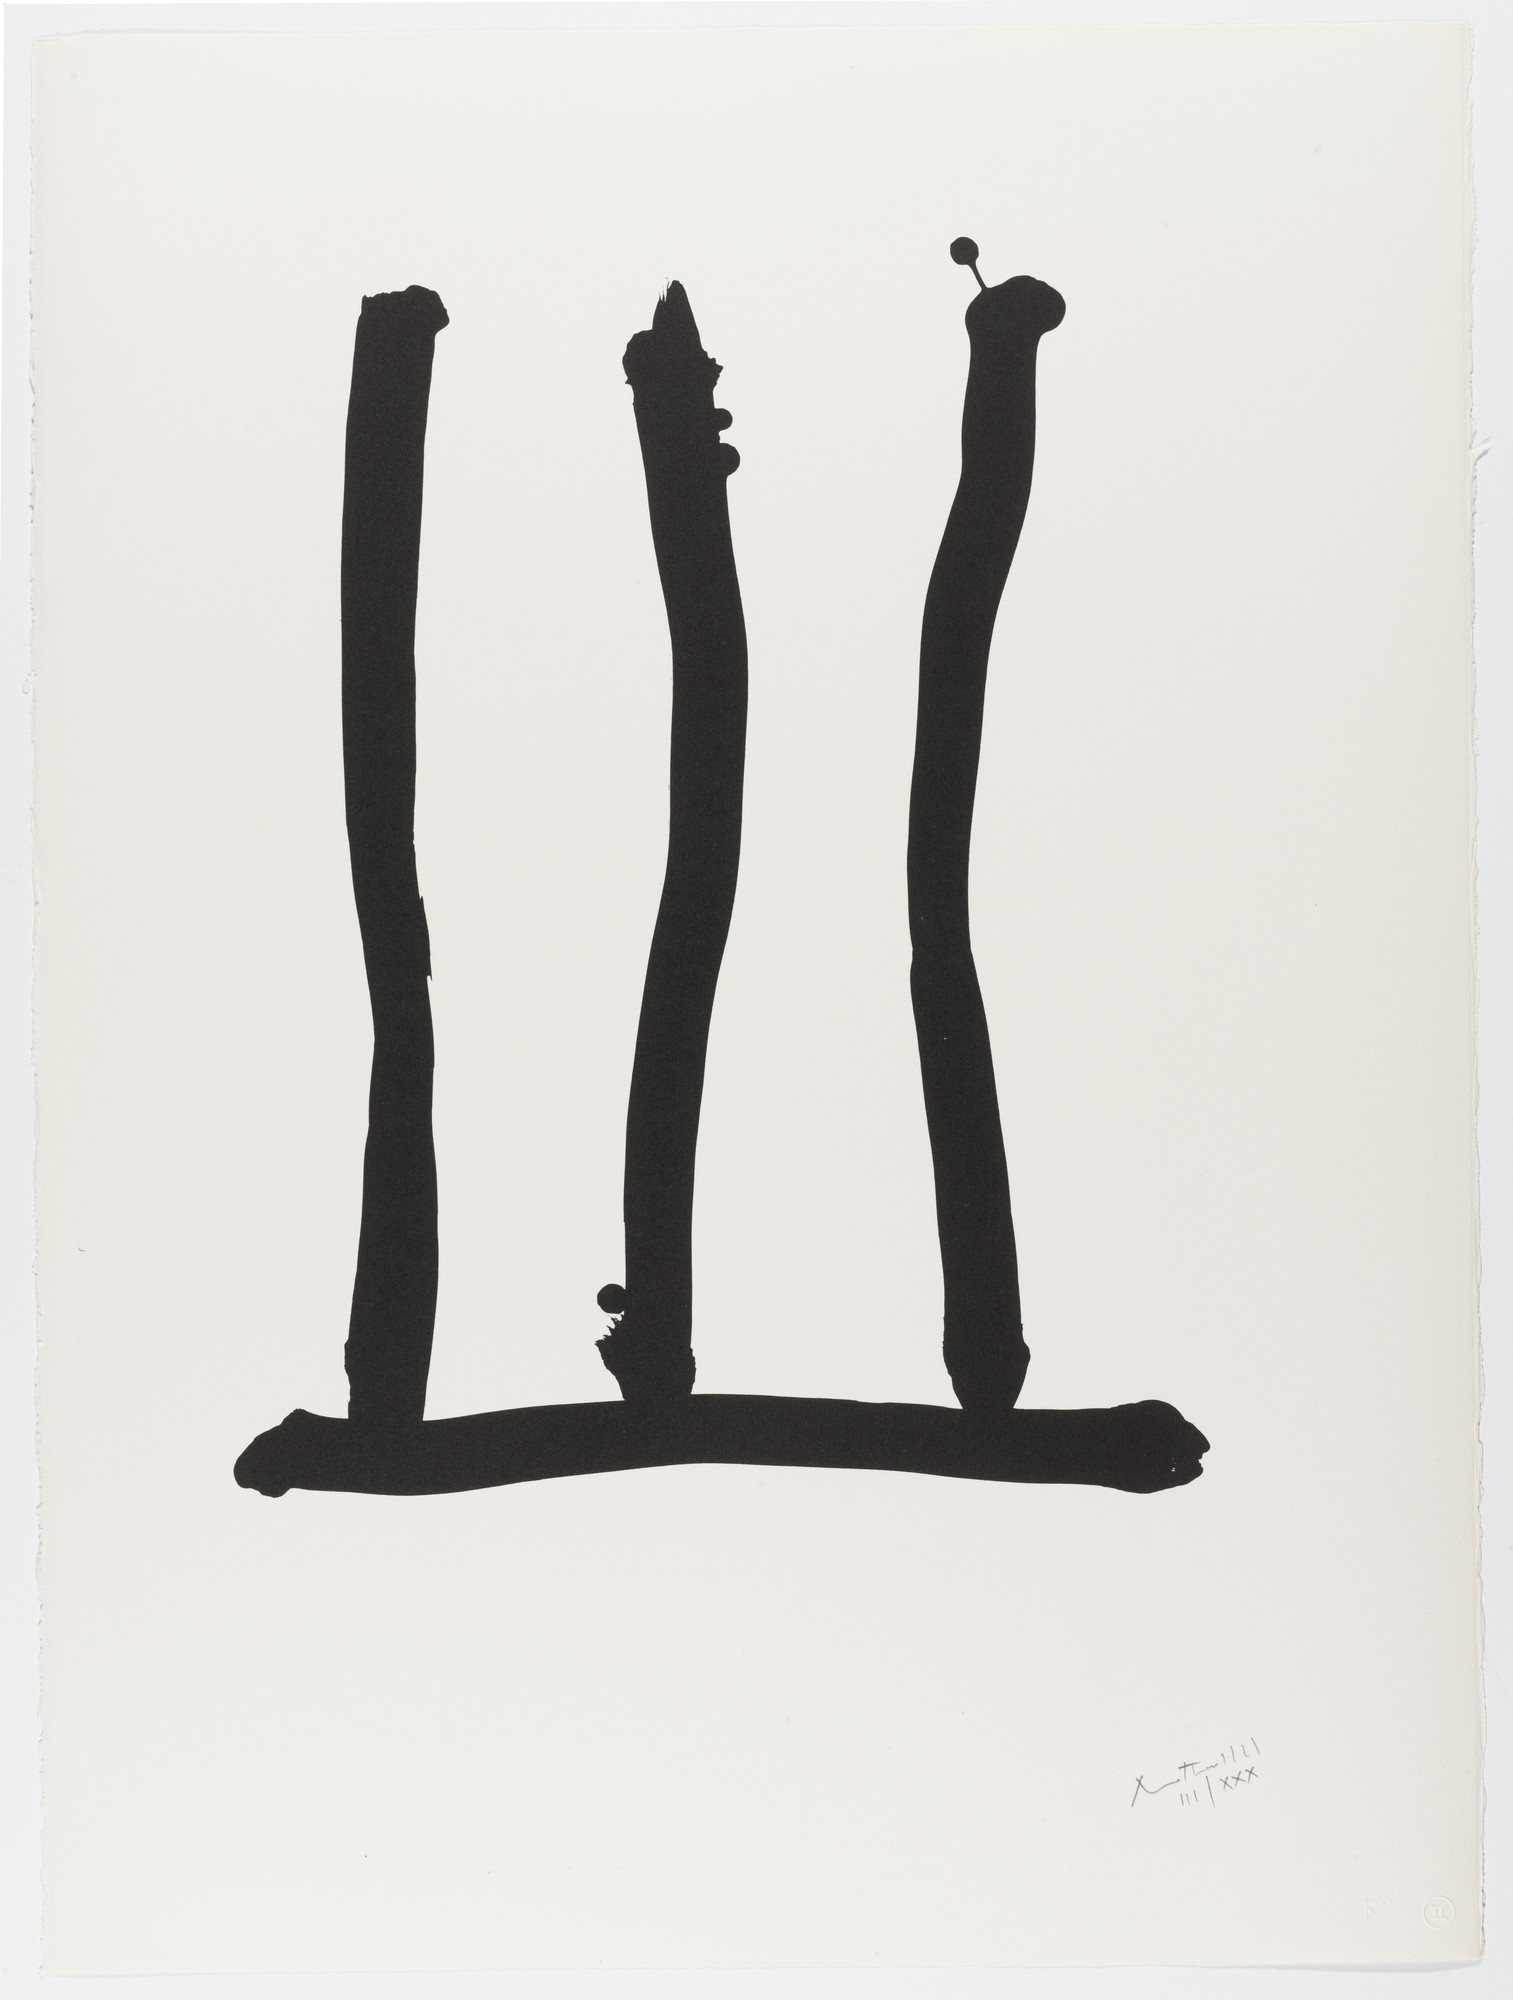 Robert Motherwell. Window from Homage to Picasso (Hommage à Picasso). 1973